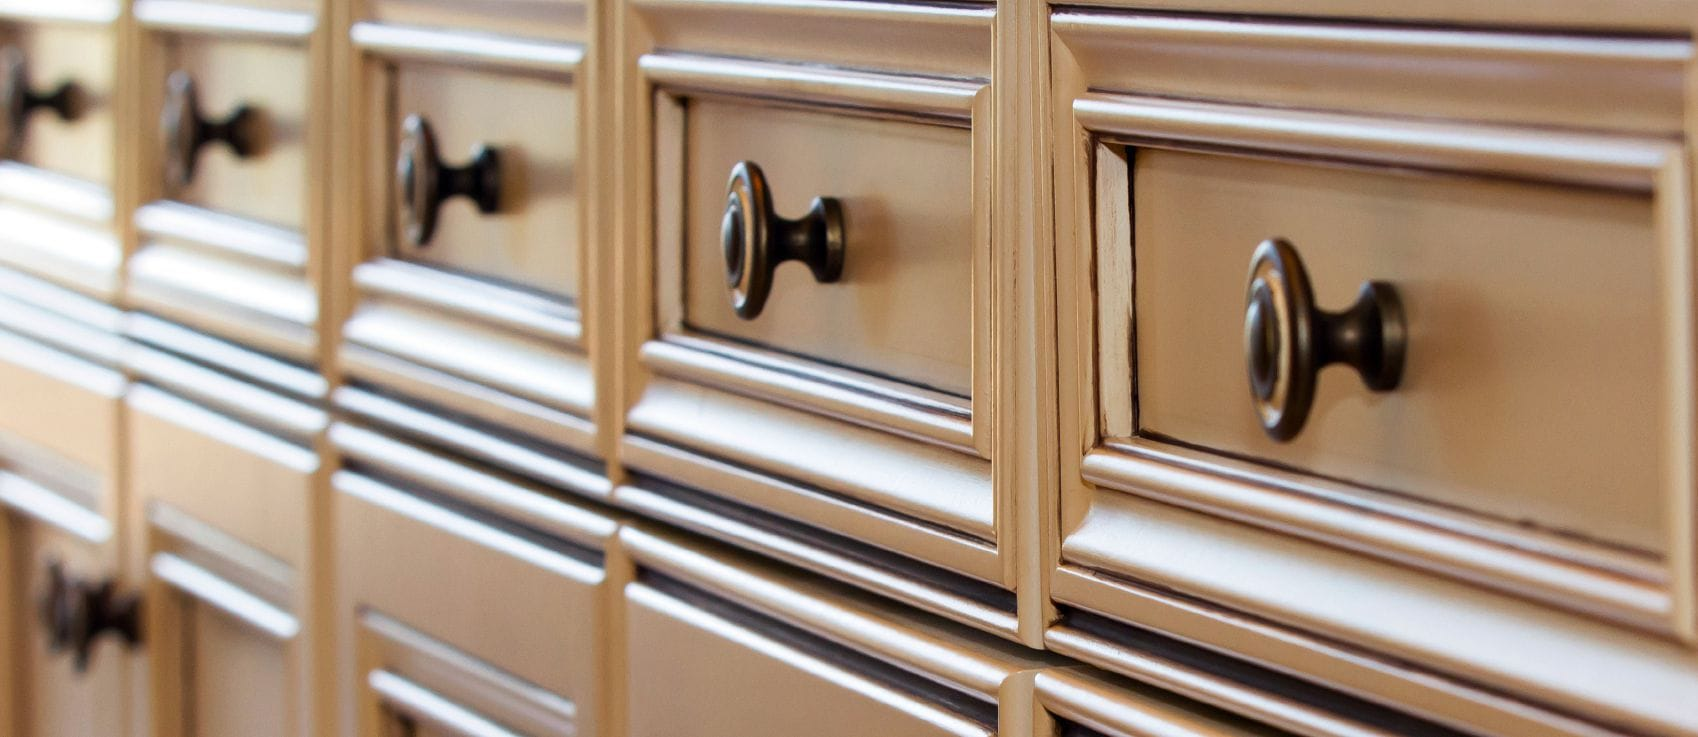 spotlight on cabinet knobs pulls and handles kitchen cabinet handles Row of kitchen cabinet drawer fronts